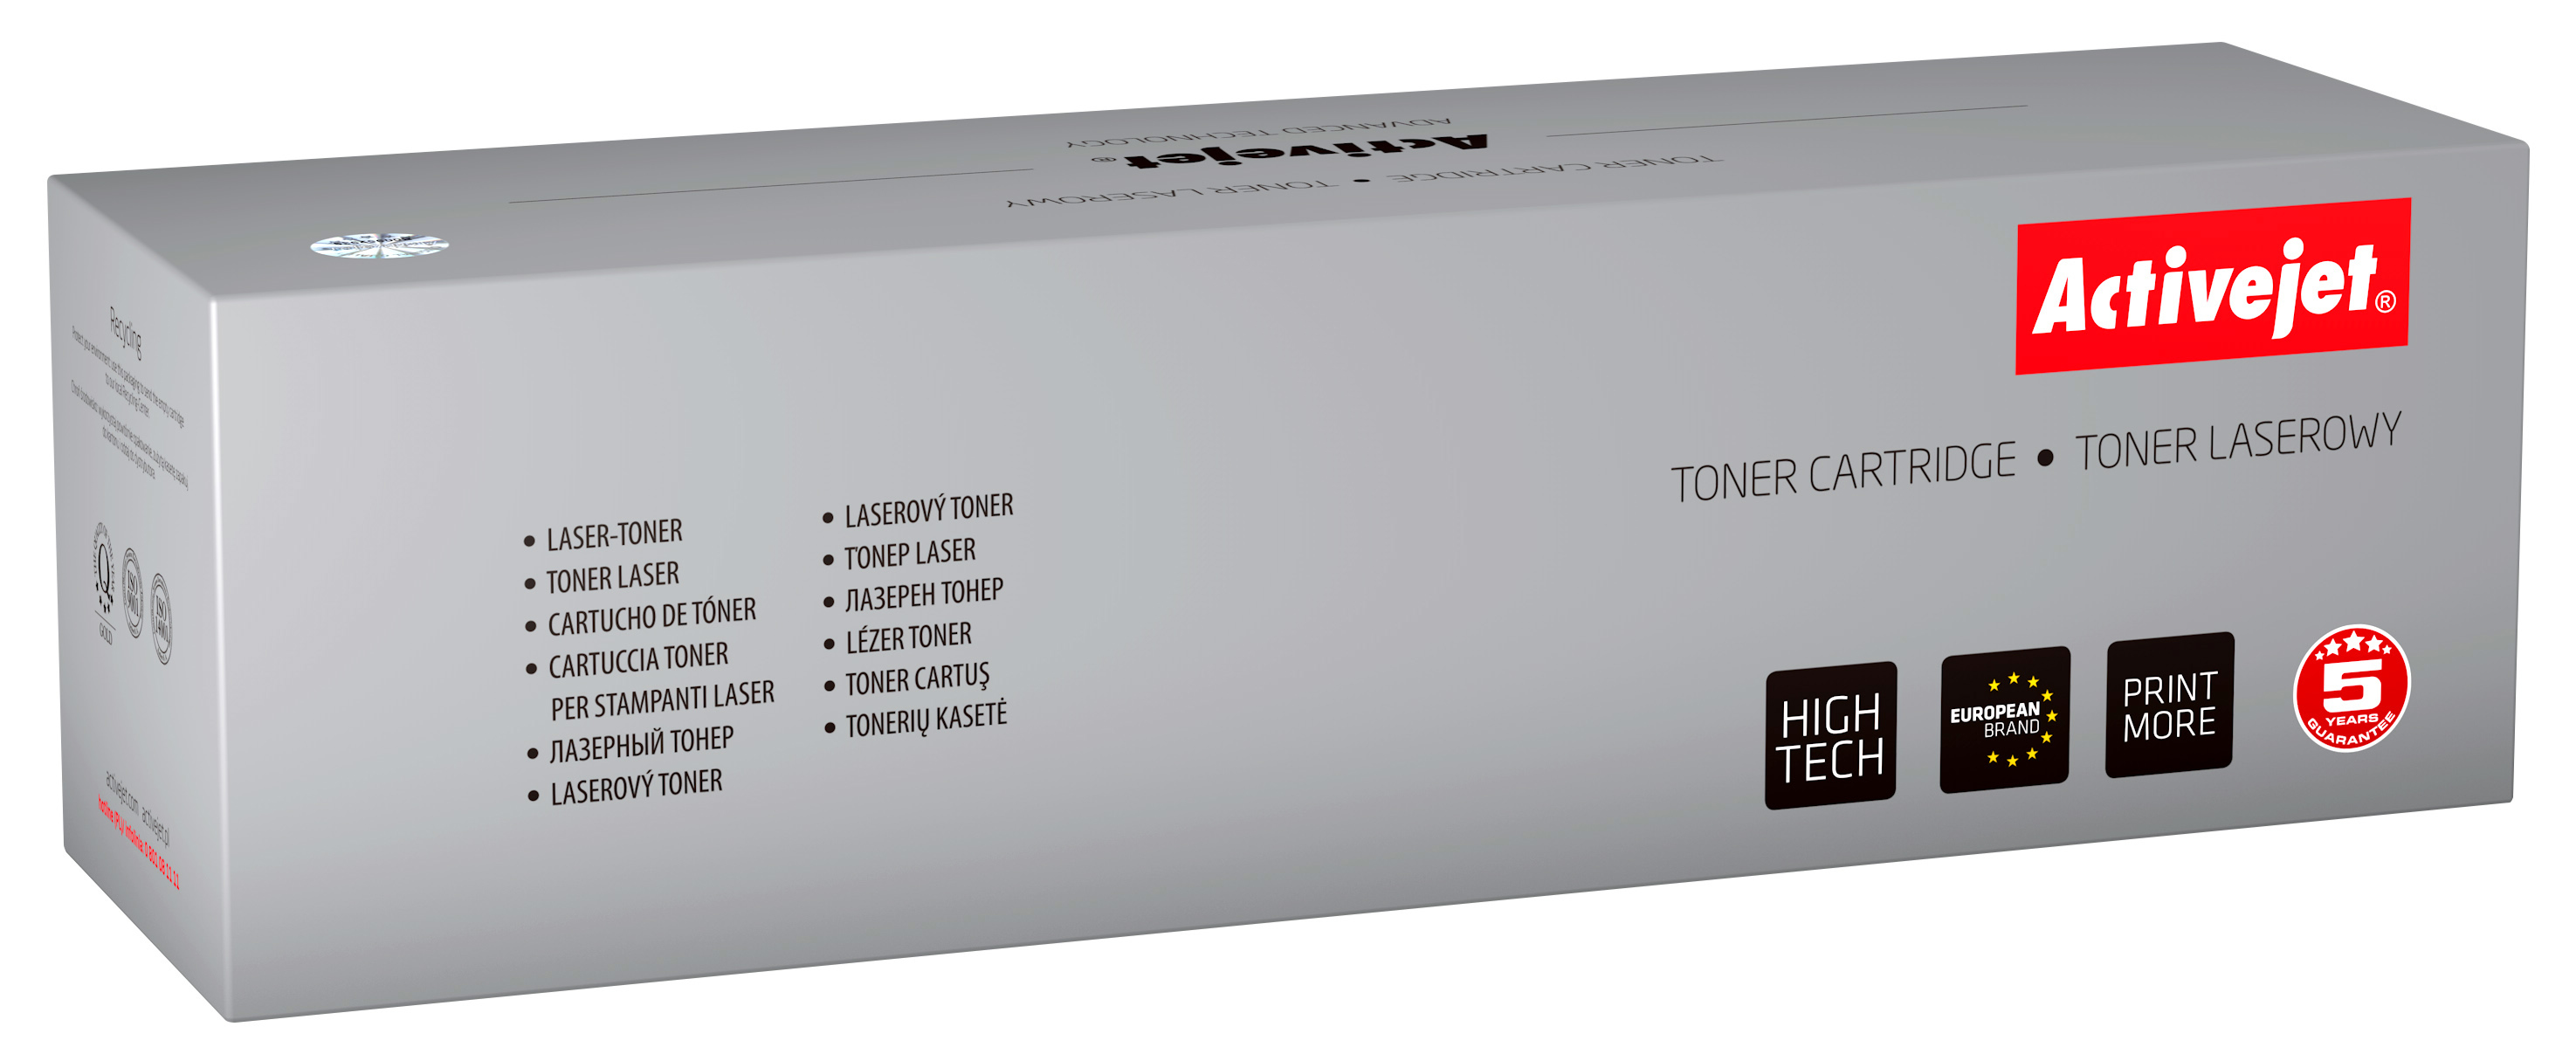 Activejet toner do Samsung MLT-D201S new ATS-201N